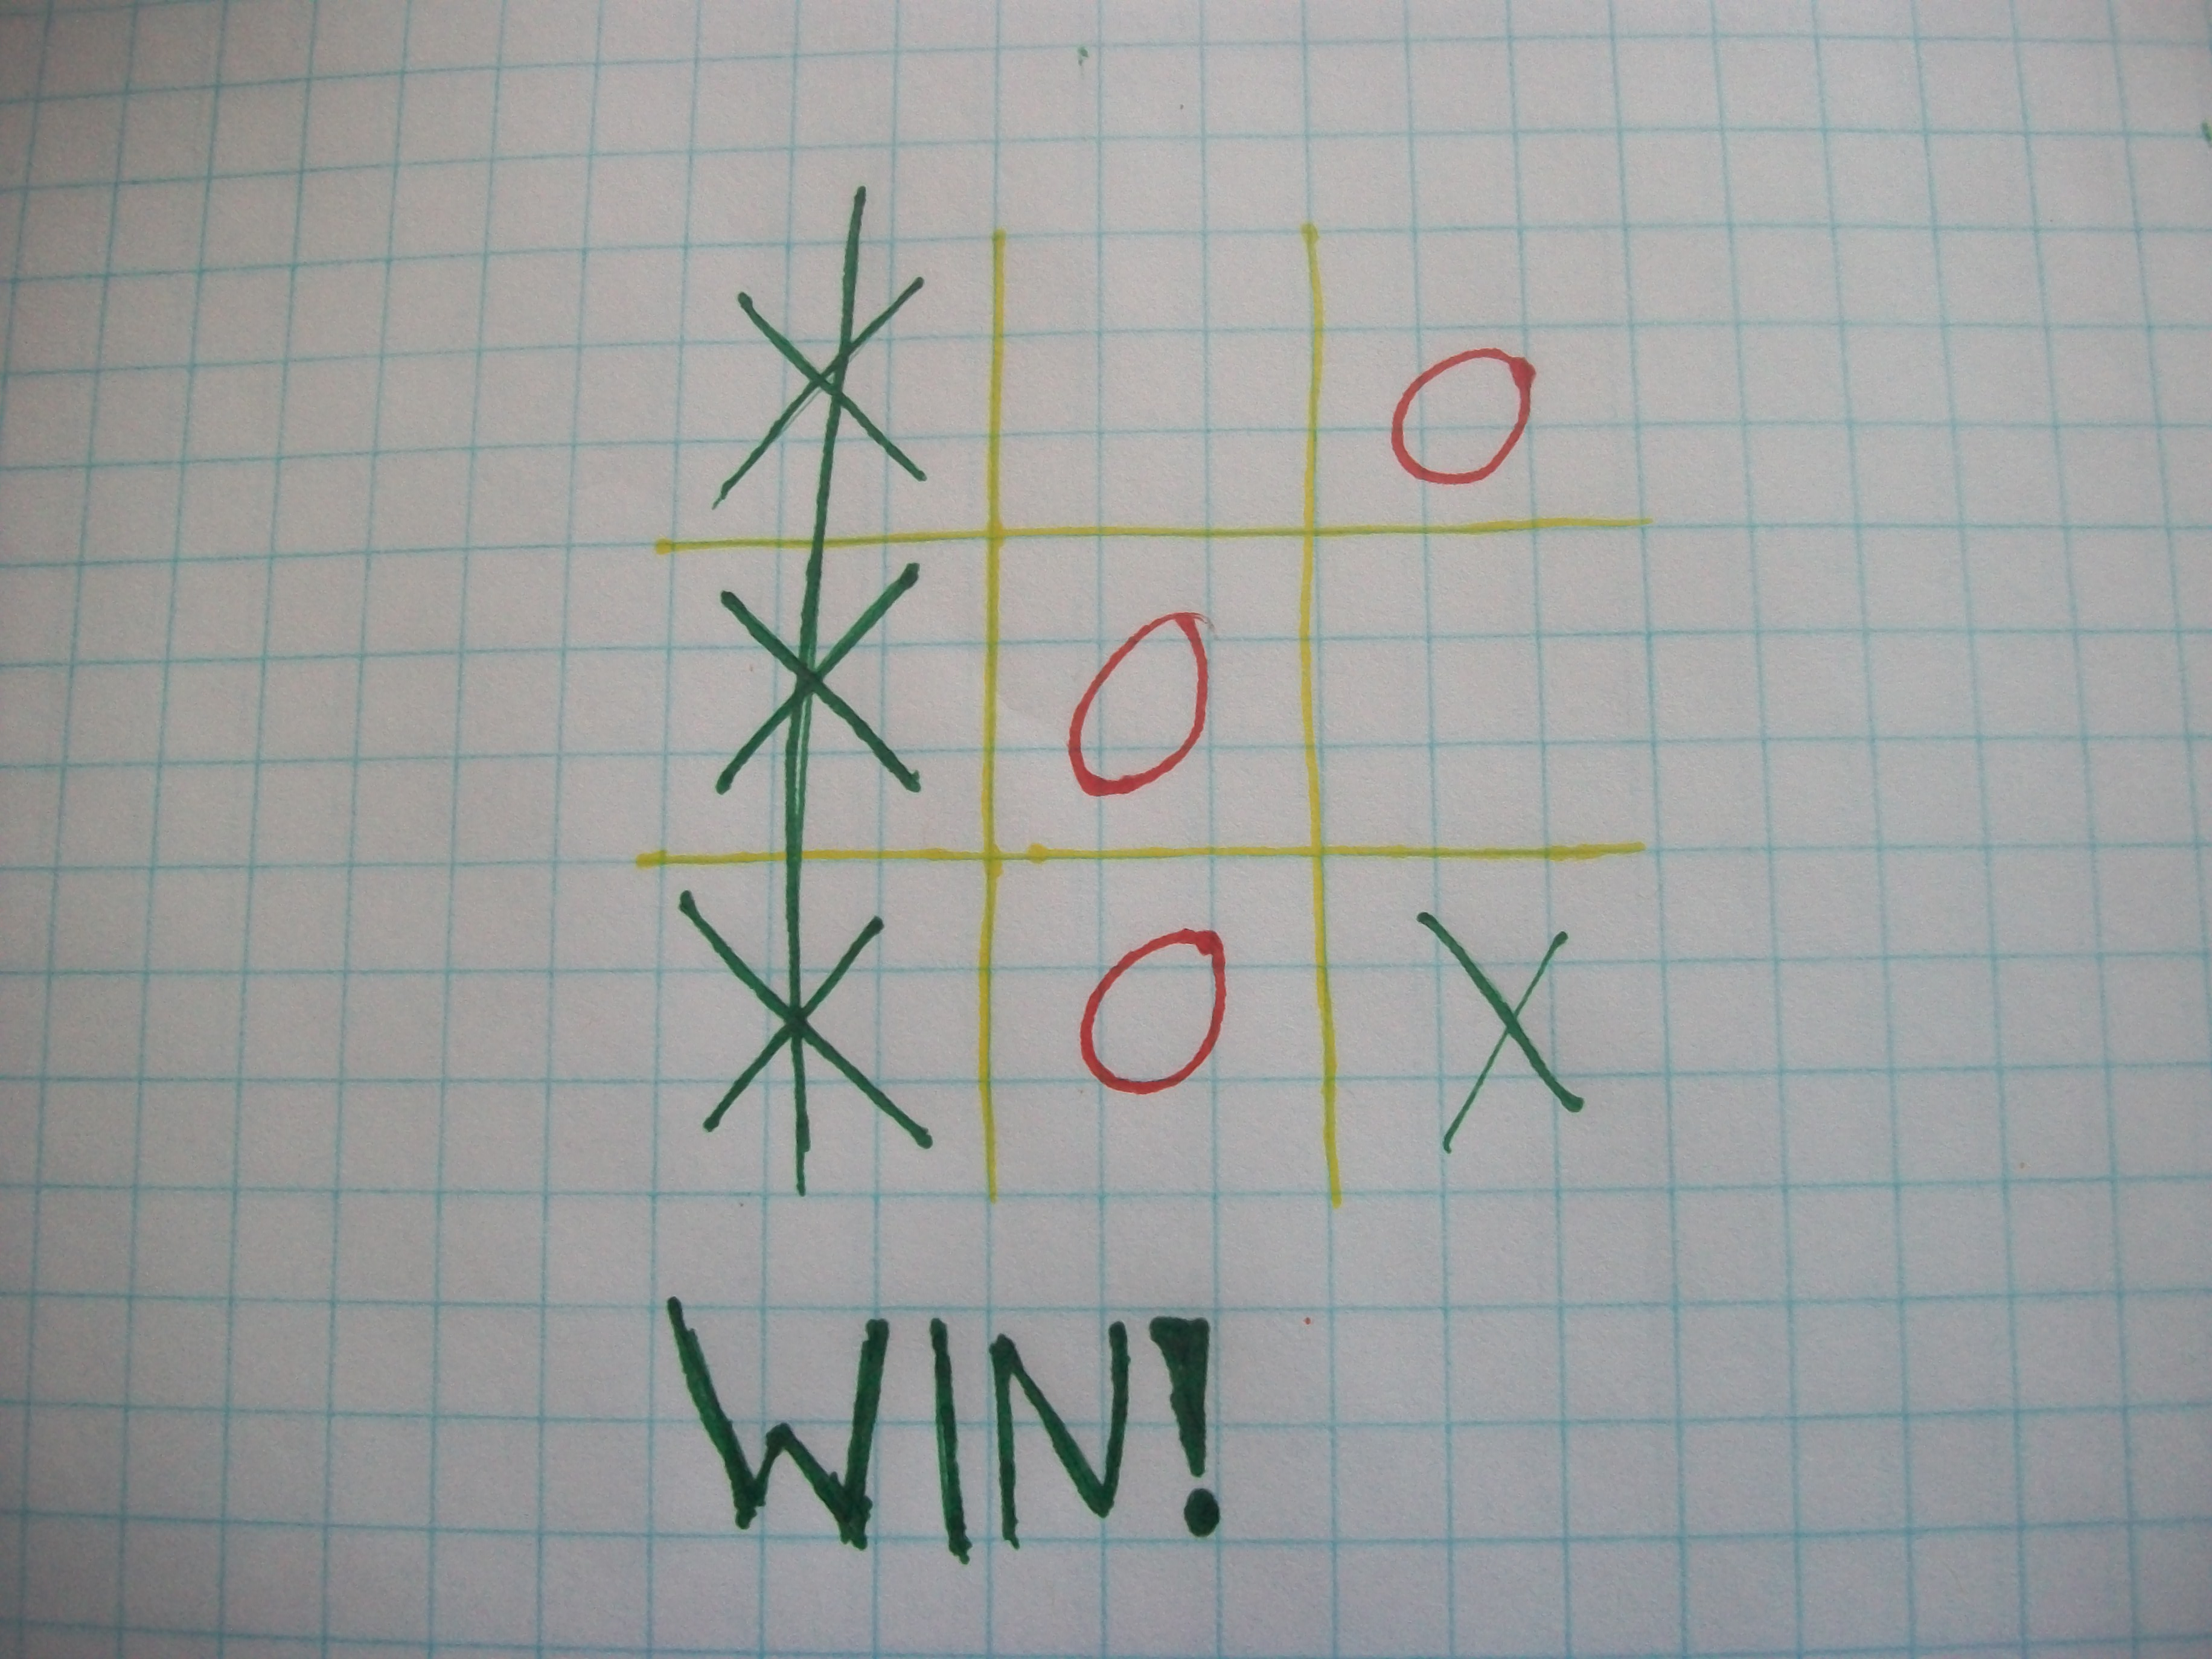 Picture of Winning Tic-tac-toe Strategies